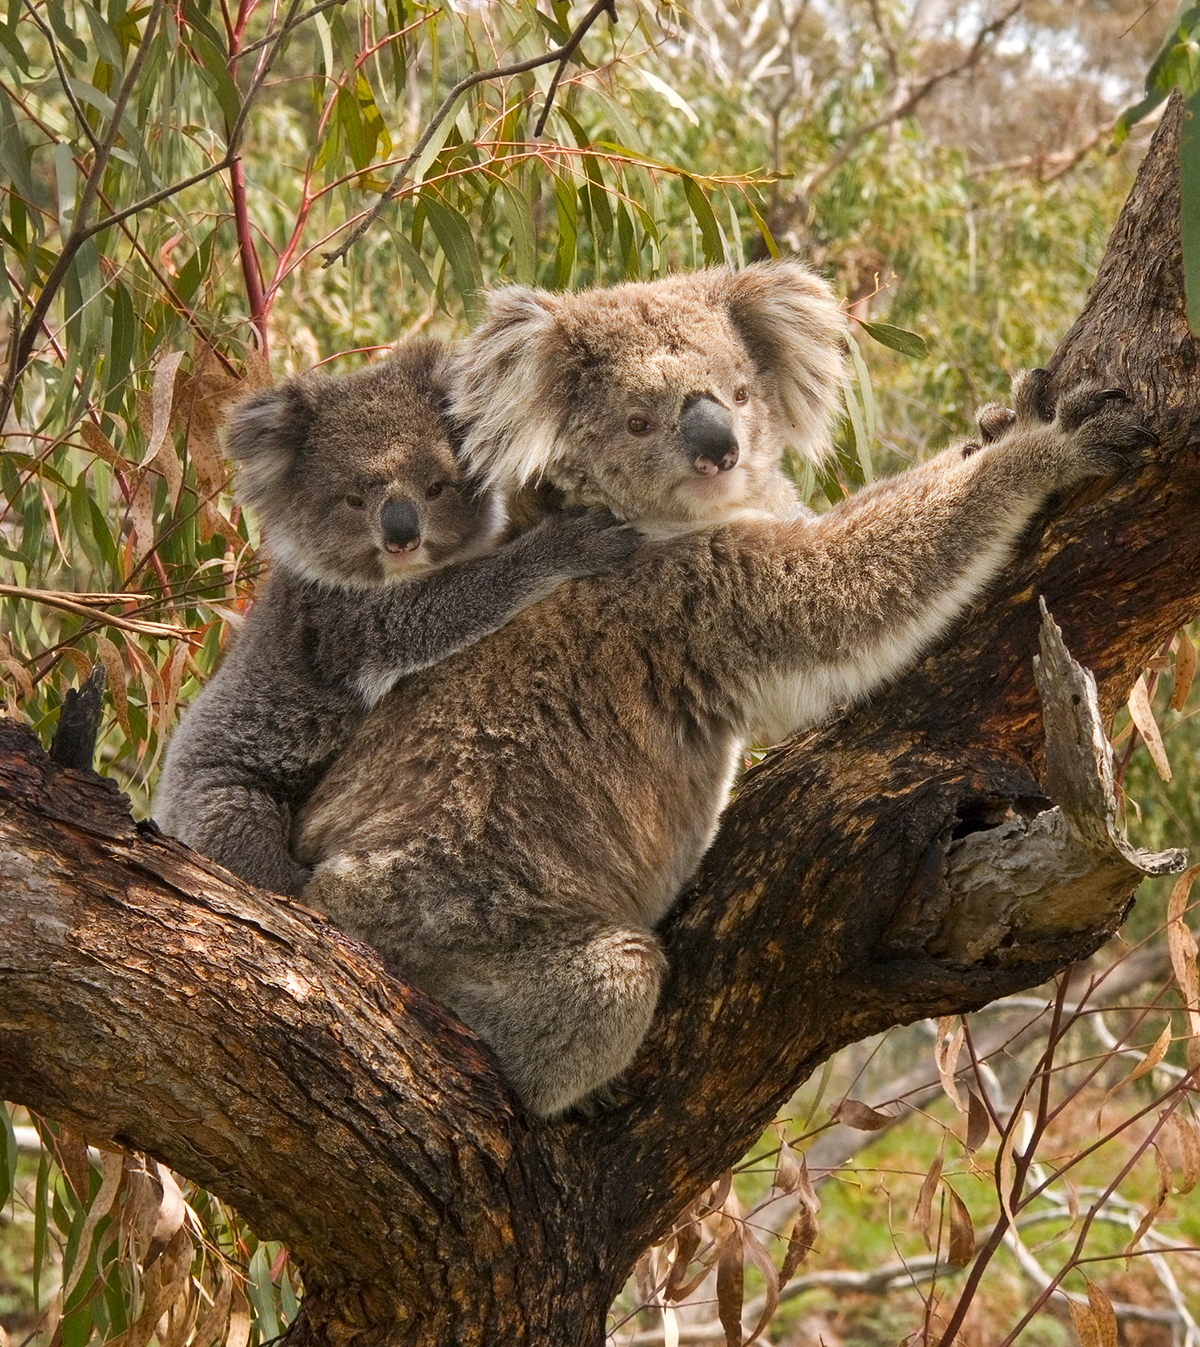 Mammals Animals: Koala and joey